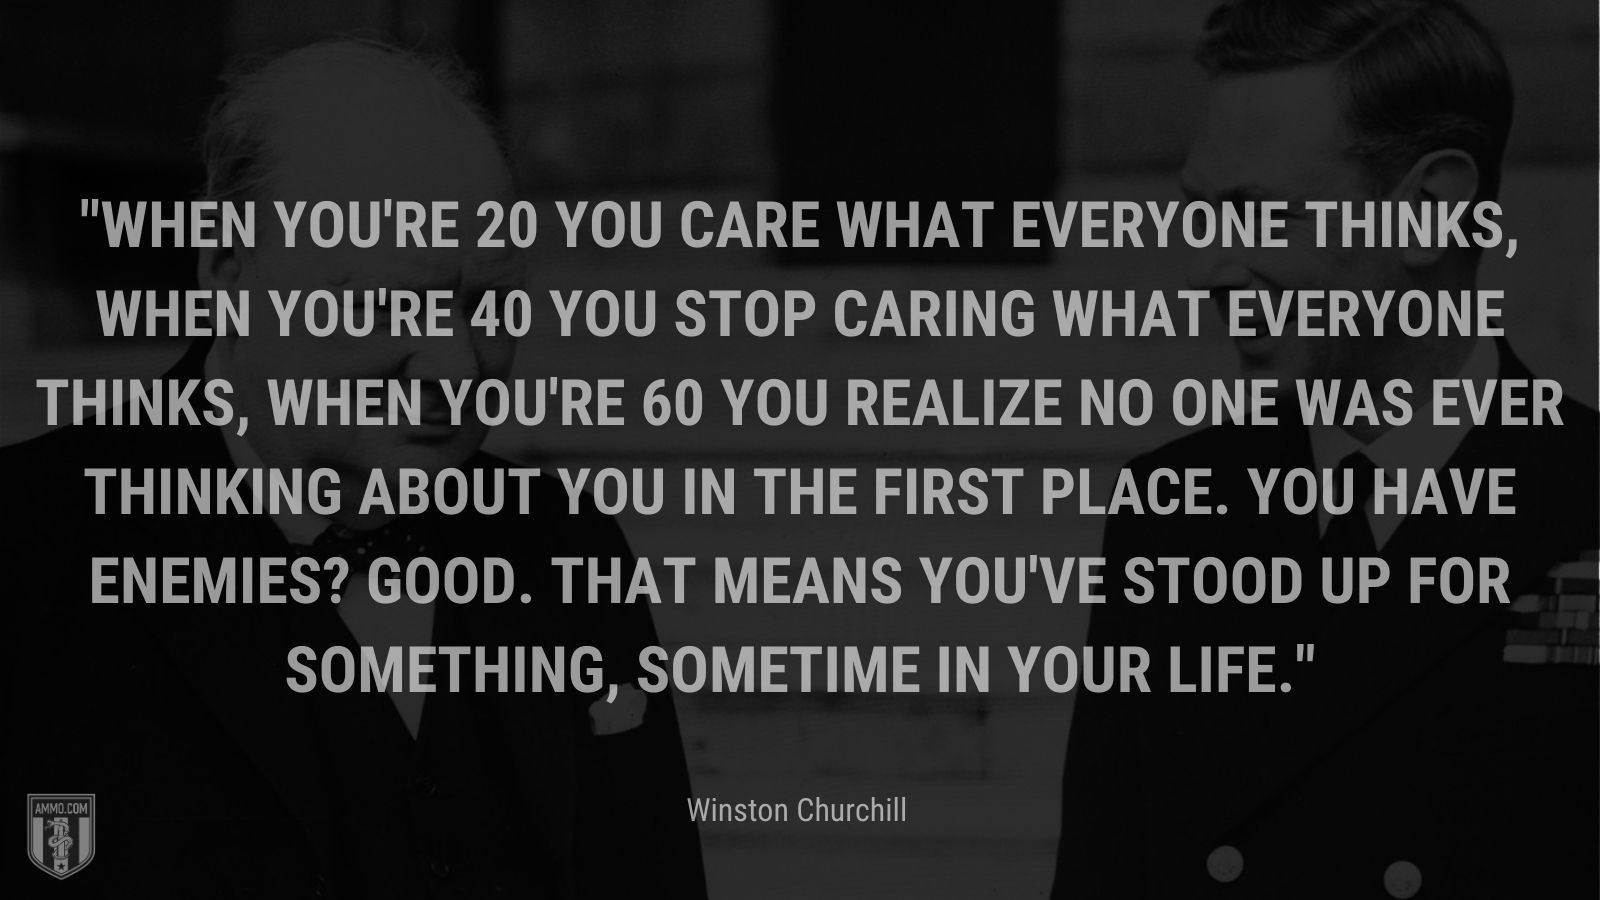 When you're 20 you care what everyone thinks, when you're 40 you stop caring what everyone thinks, when you're 60 you realize no one was ever thinking about you in the first place. You have enemies? Good. That means you've stood up for something, sometime in your life.